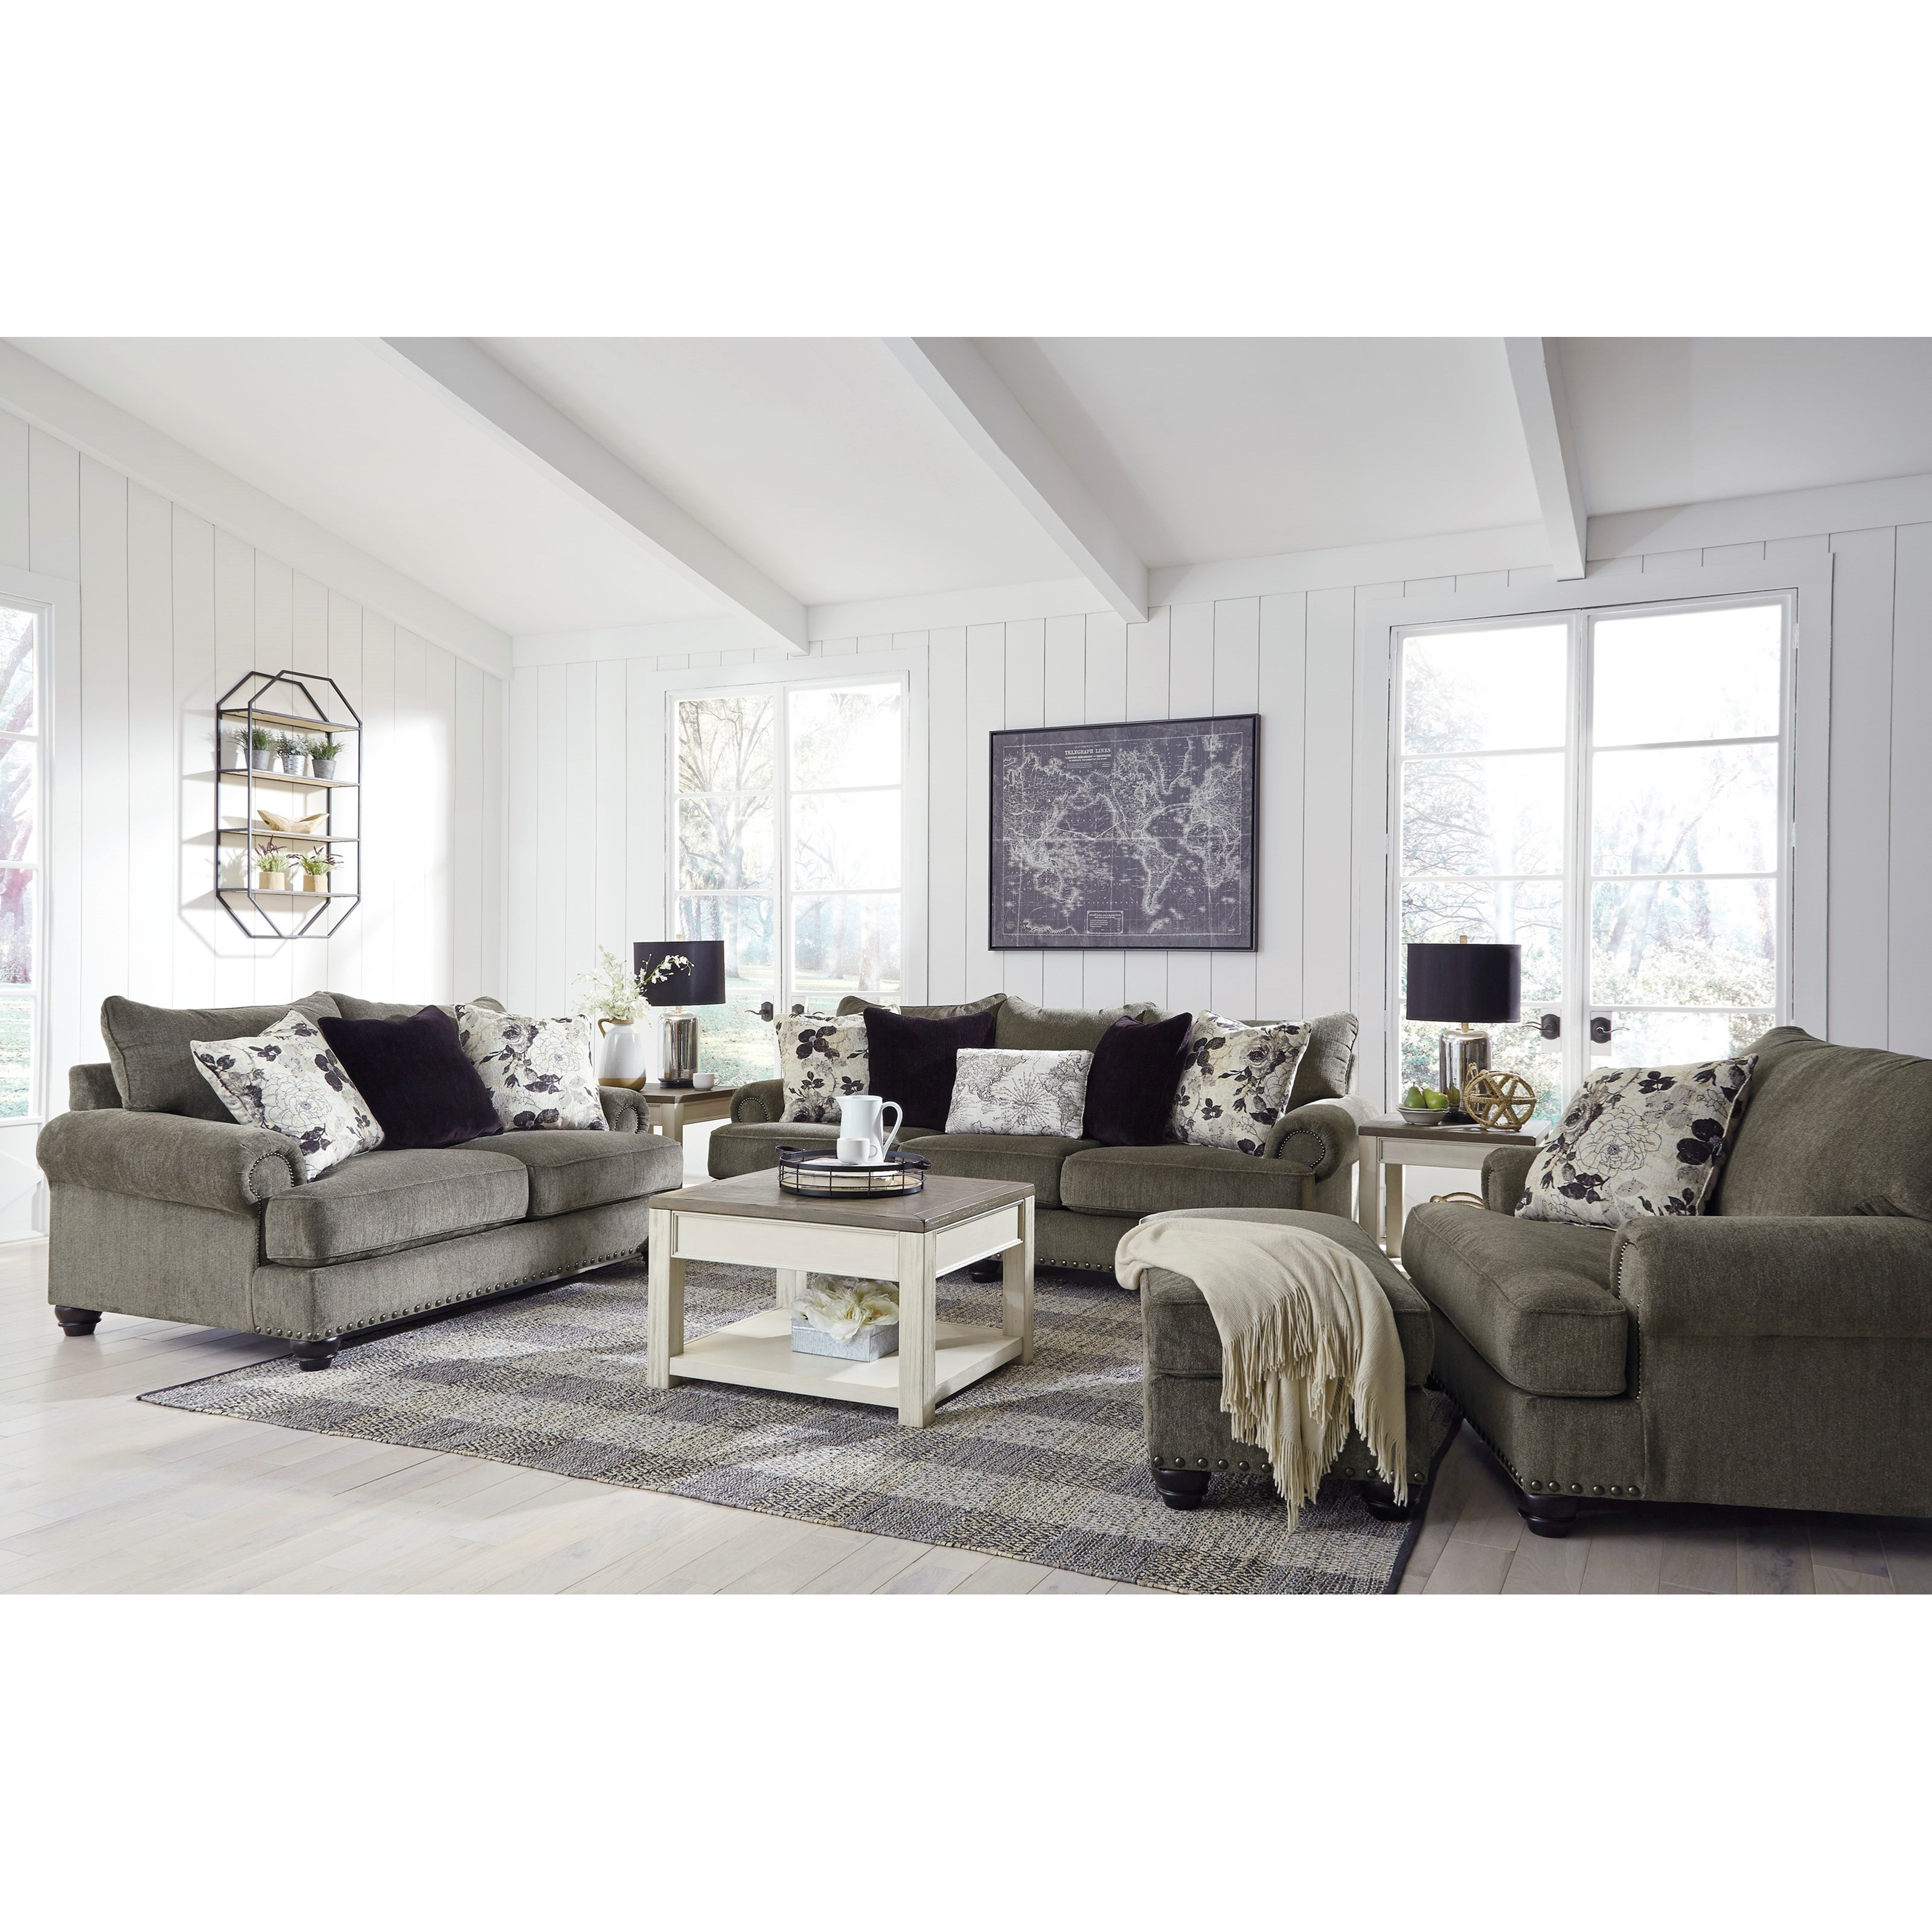 Sembler Living Room Group by Benchcraft at Northeast Factory Direct